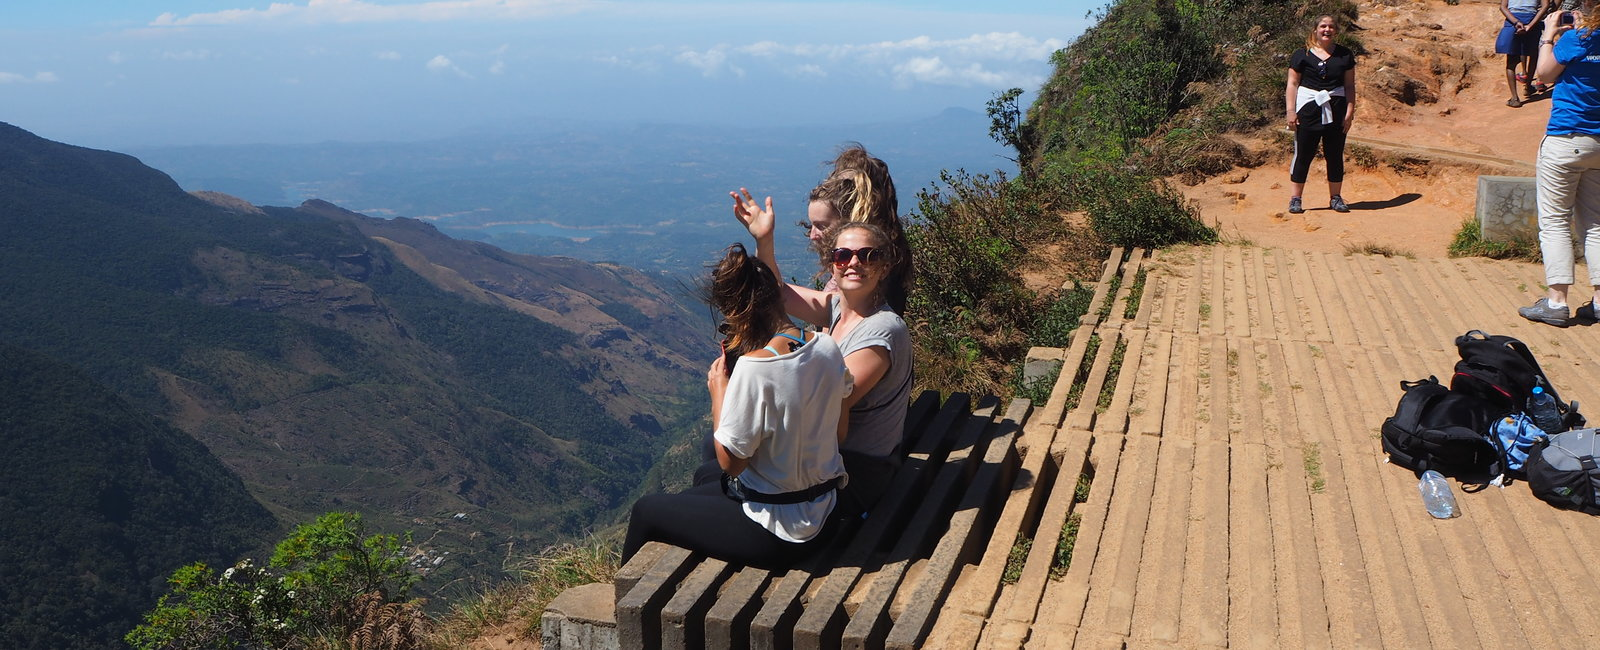 Kaitlin Freienmuth - Physiotherapy Electives in Sri Lanka Kandy